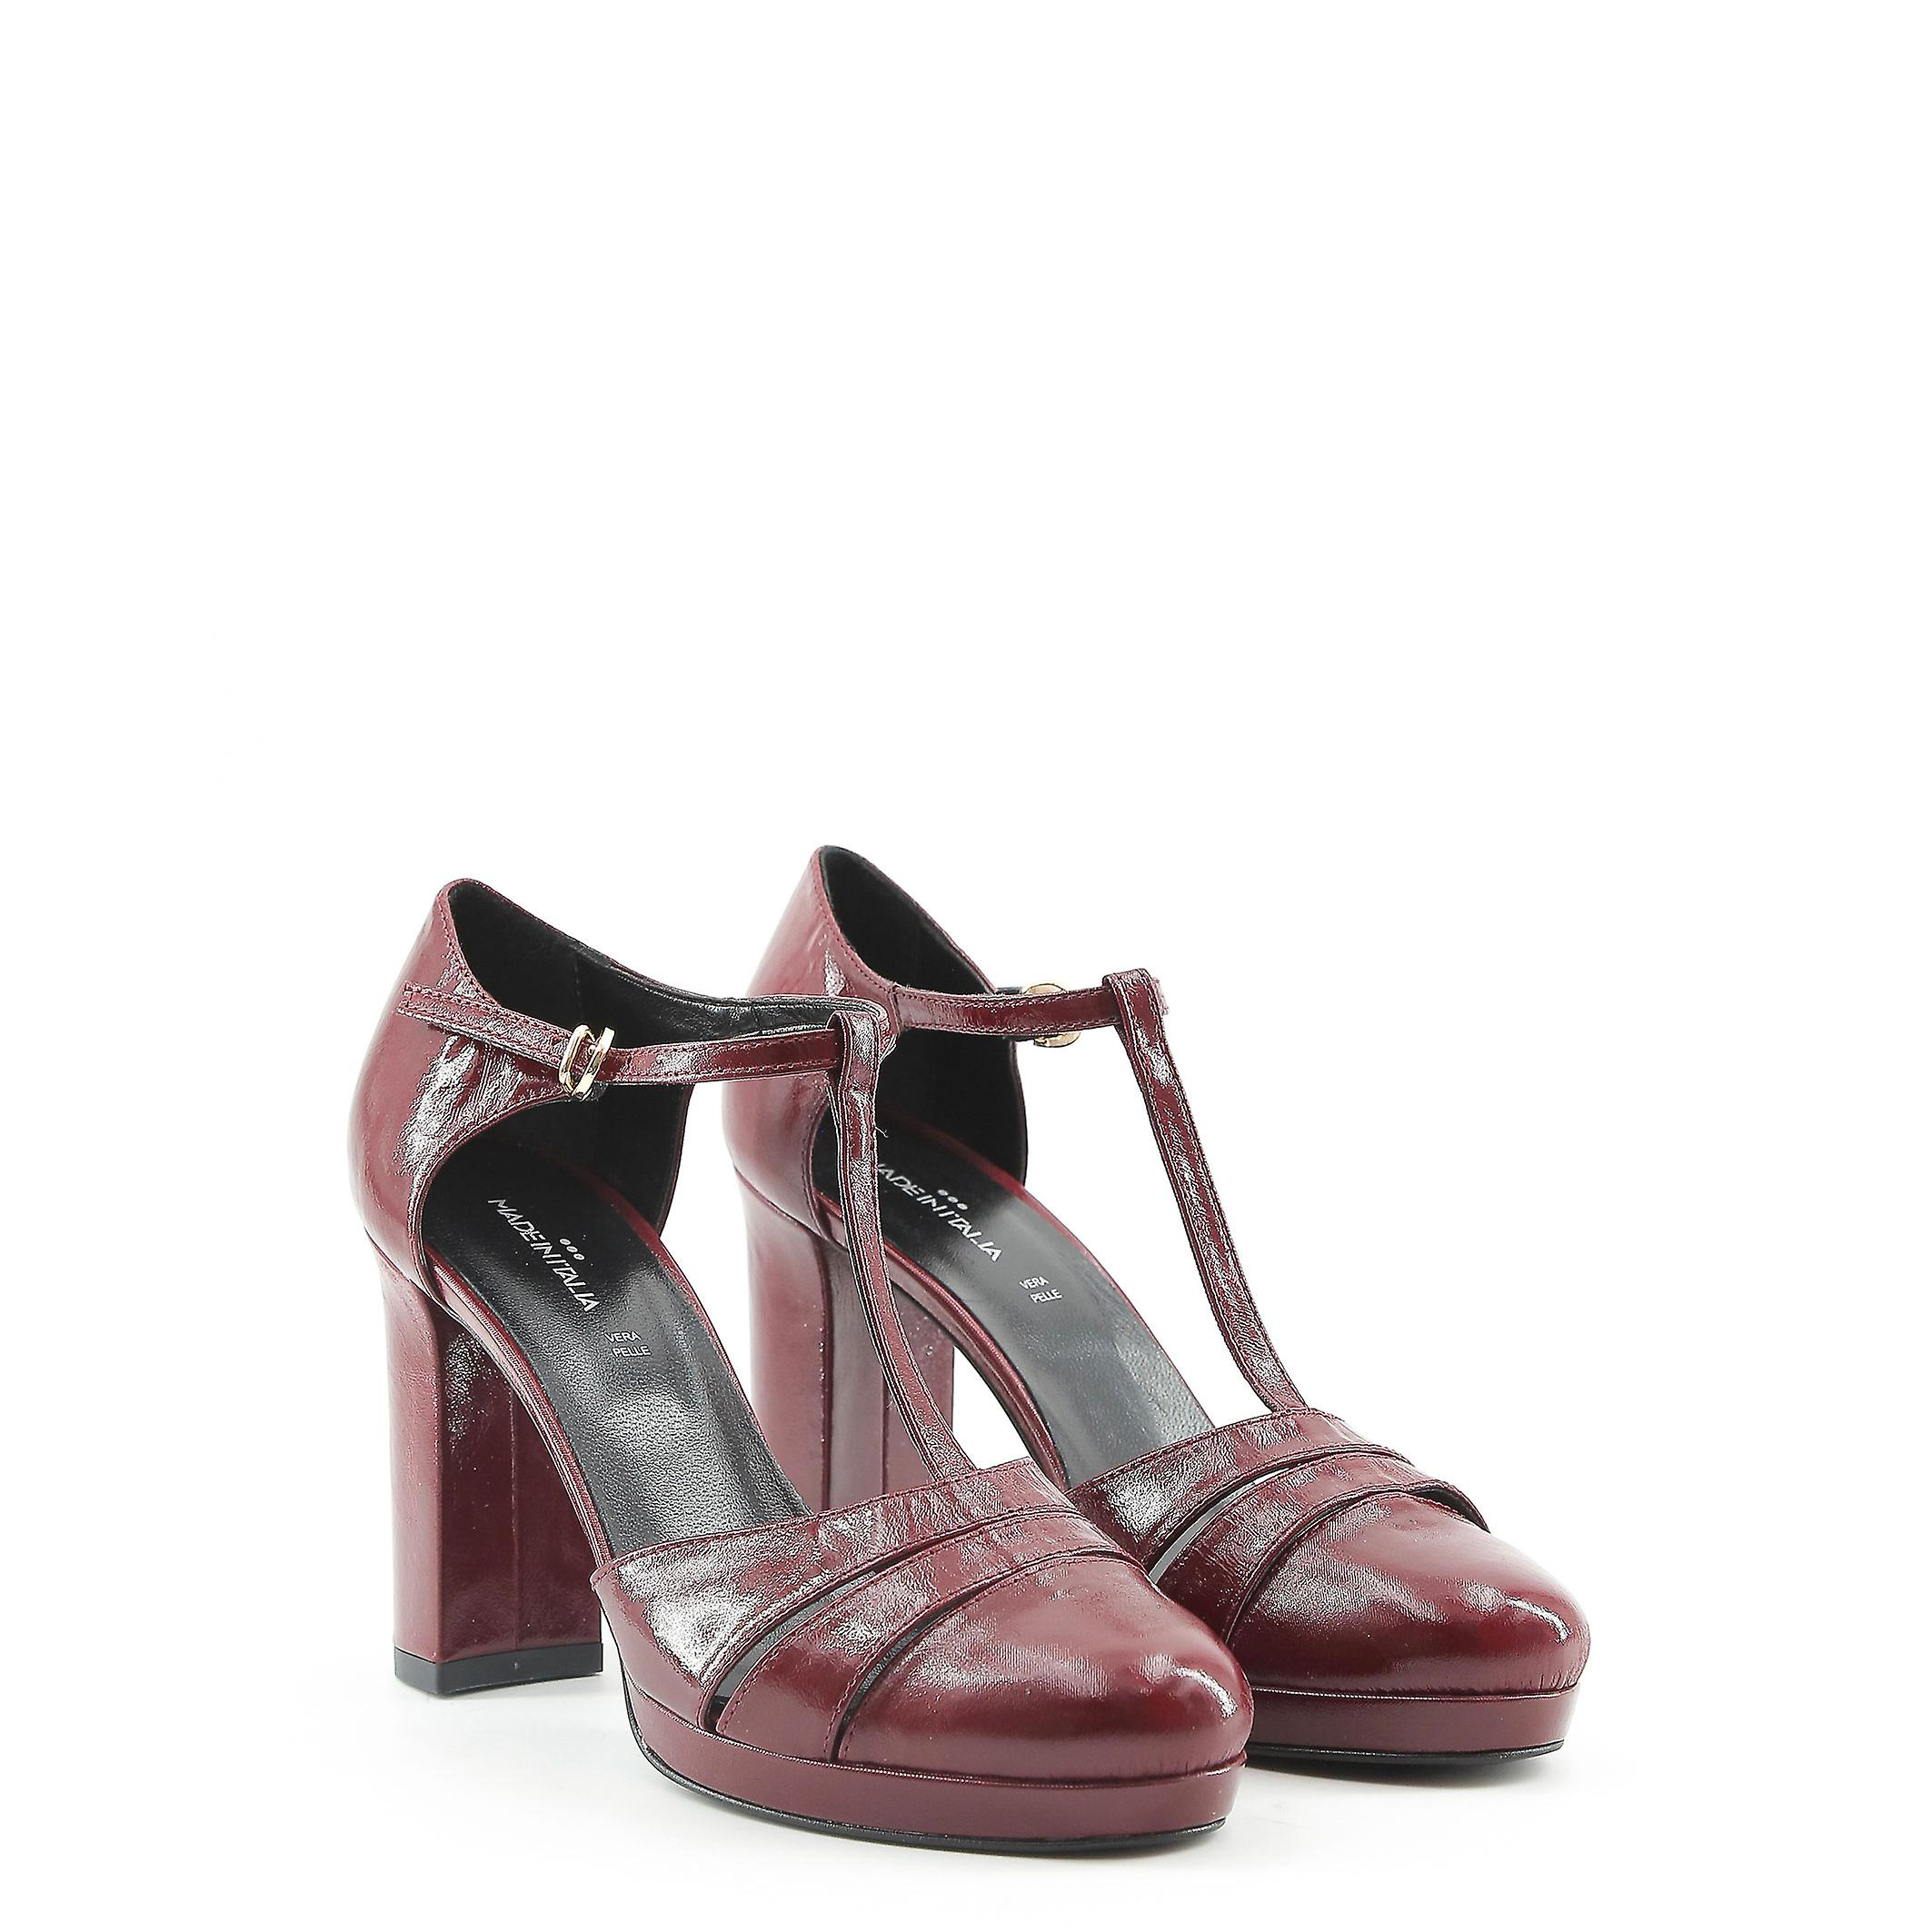 Made in Italia - CLOE Women's Pump & Heel Shoe